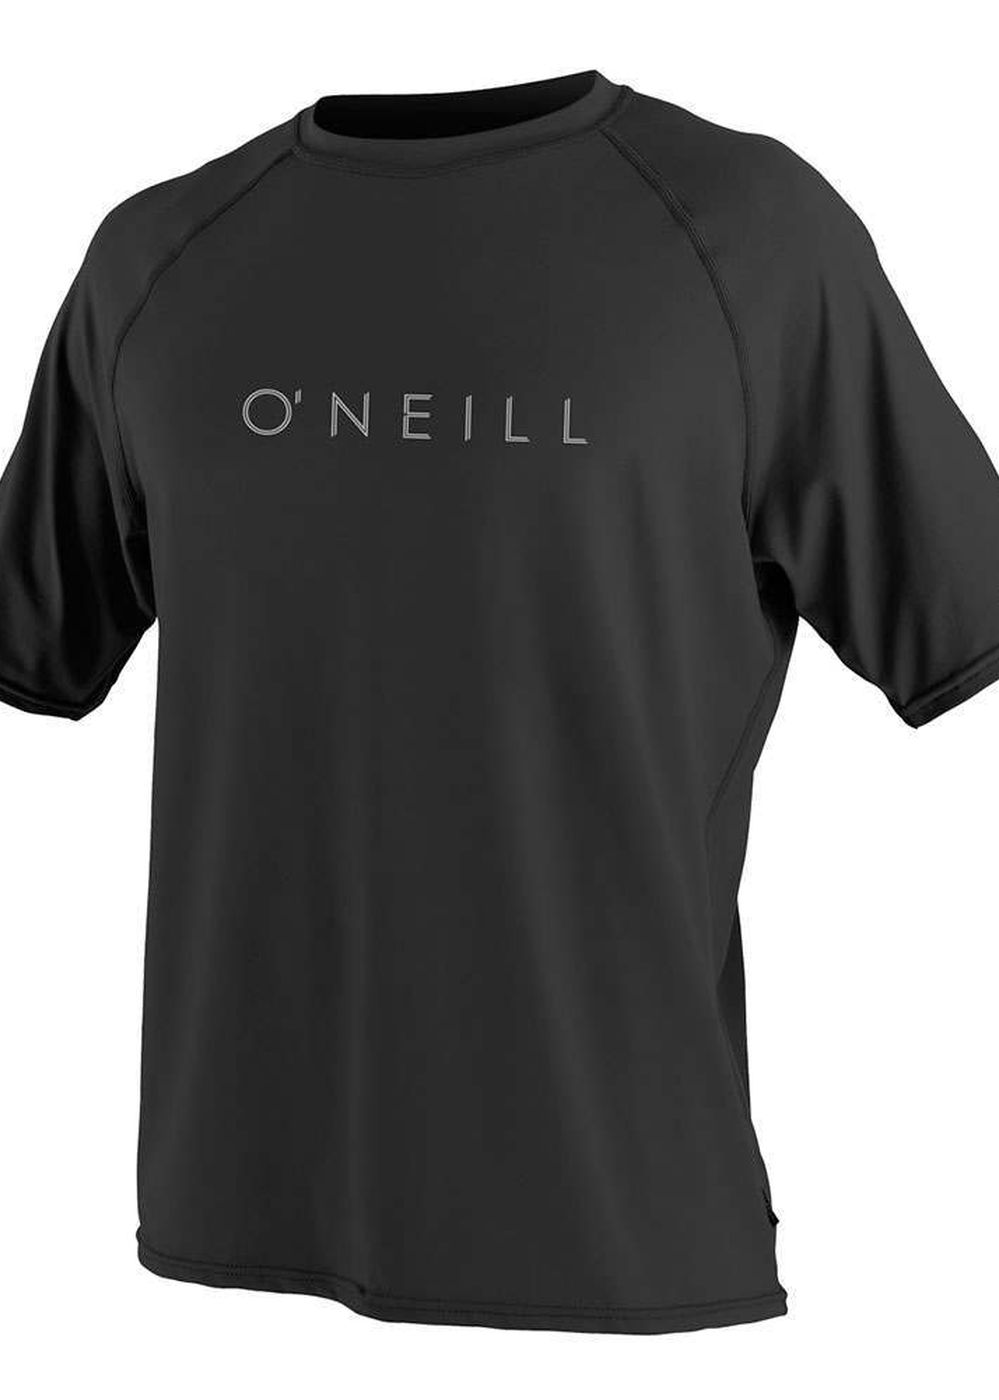 ONeill 24-7 Tech Short Sleeve Surf Rash Tee Black